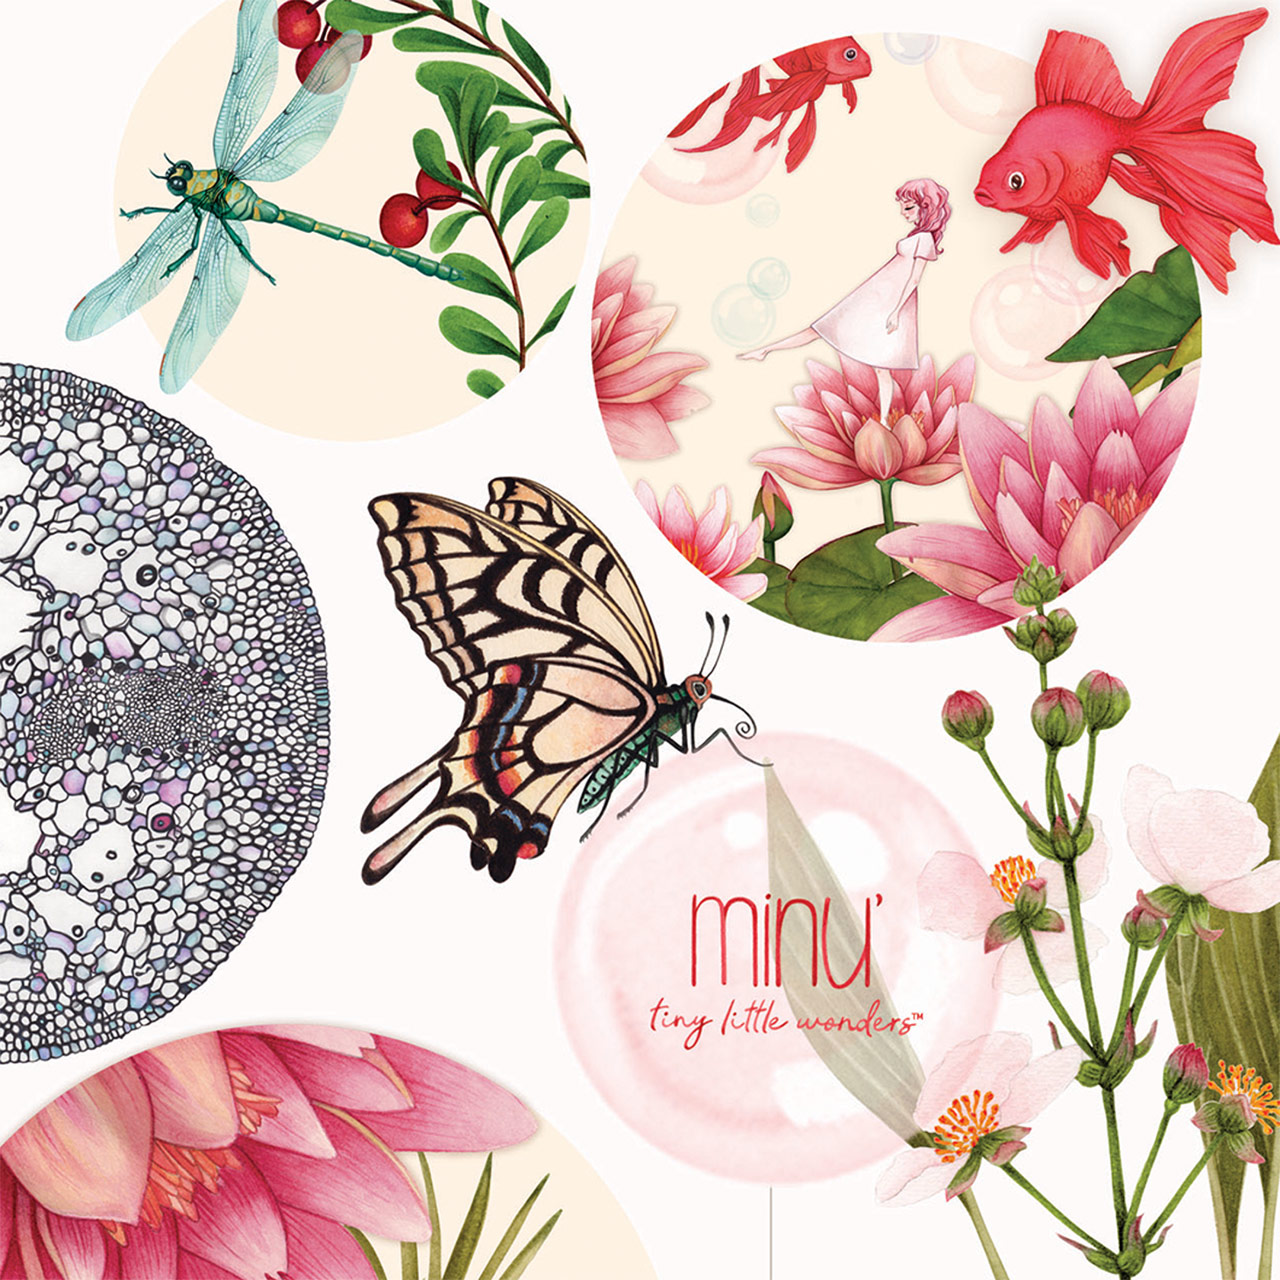 Minu lifestyle designs inspired by nature